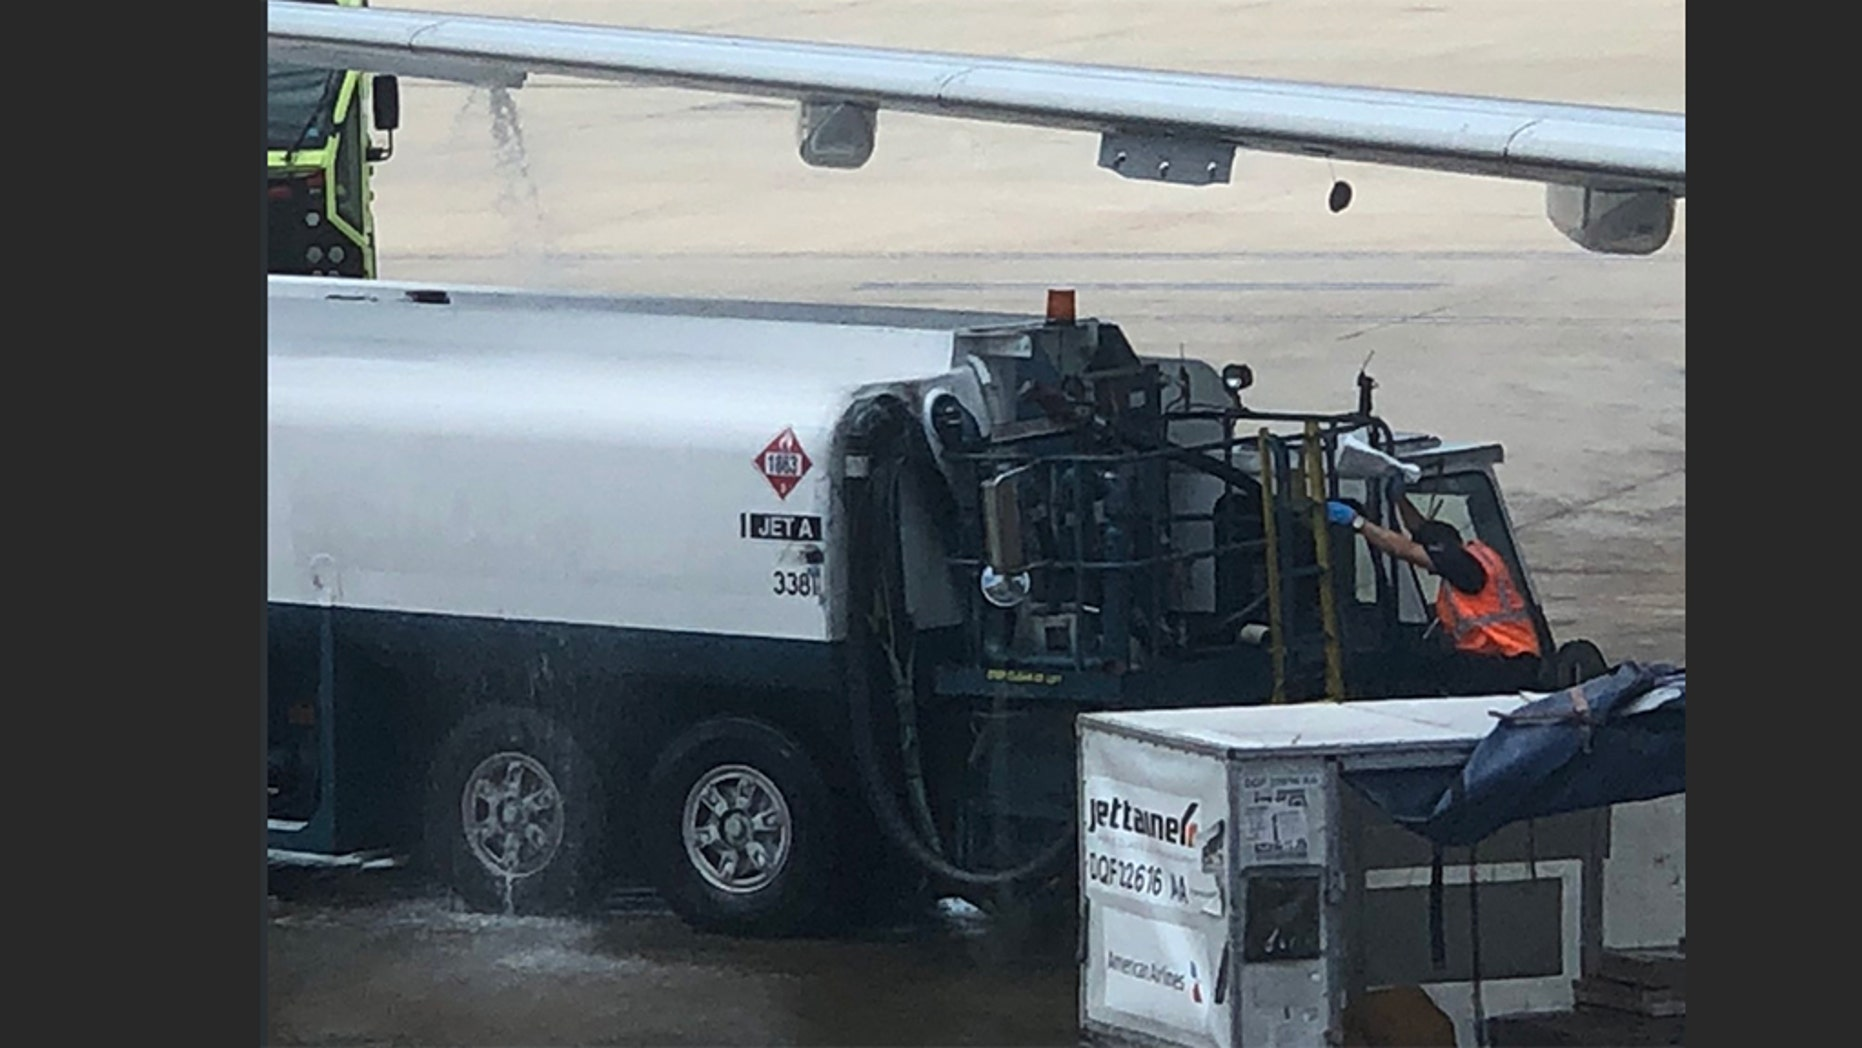 An American Airlines flight was delayed after fuel was seen leaking from the plane wing.